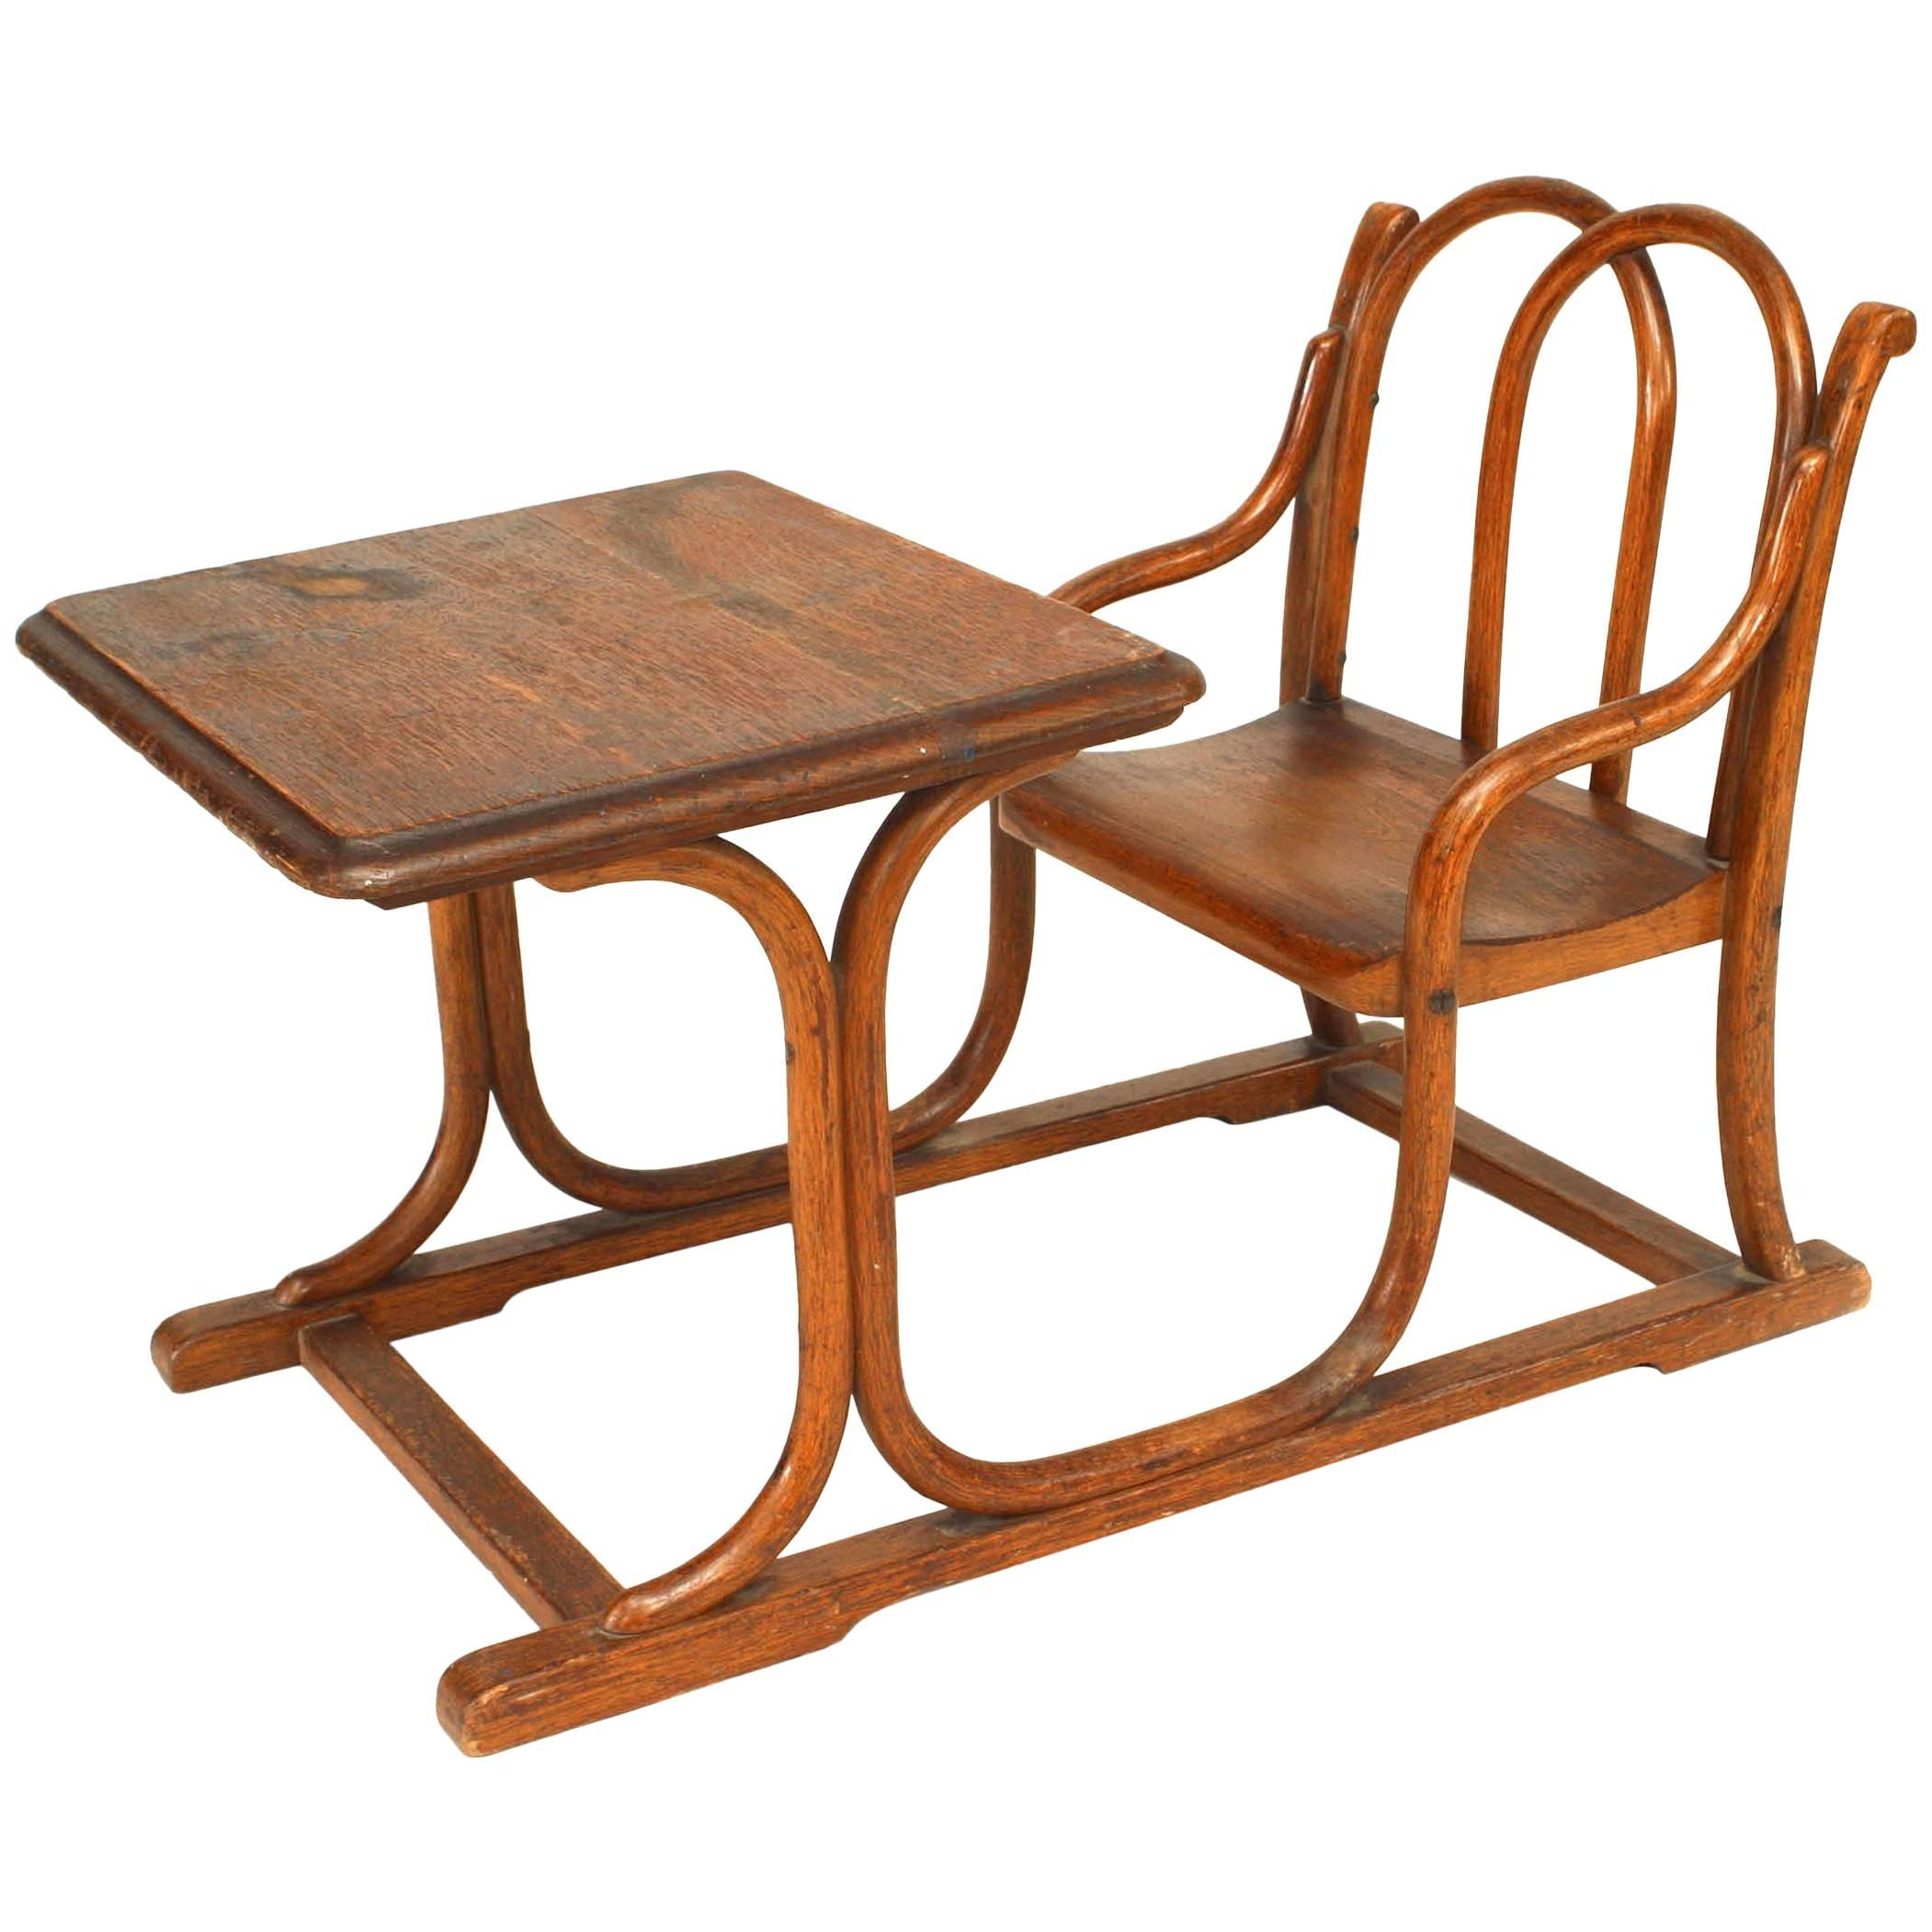 Austrian Bentwood Small Childu0027s Desk With Attached Chair